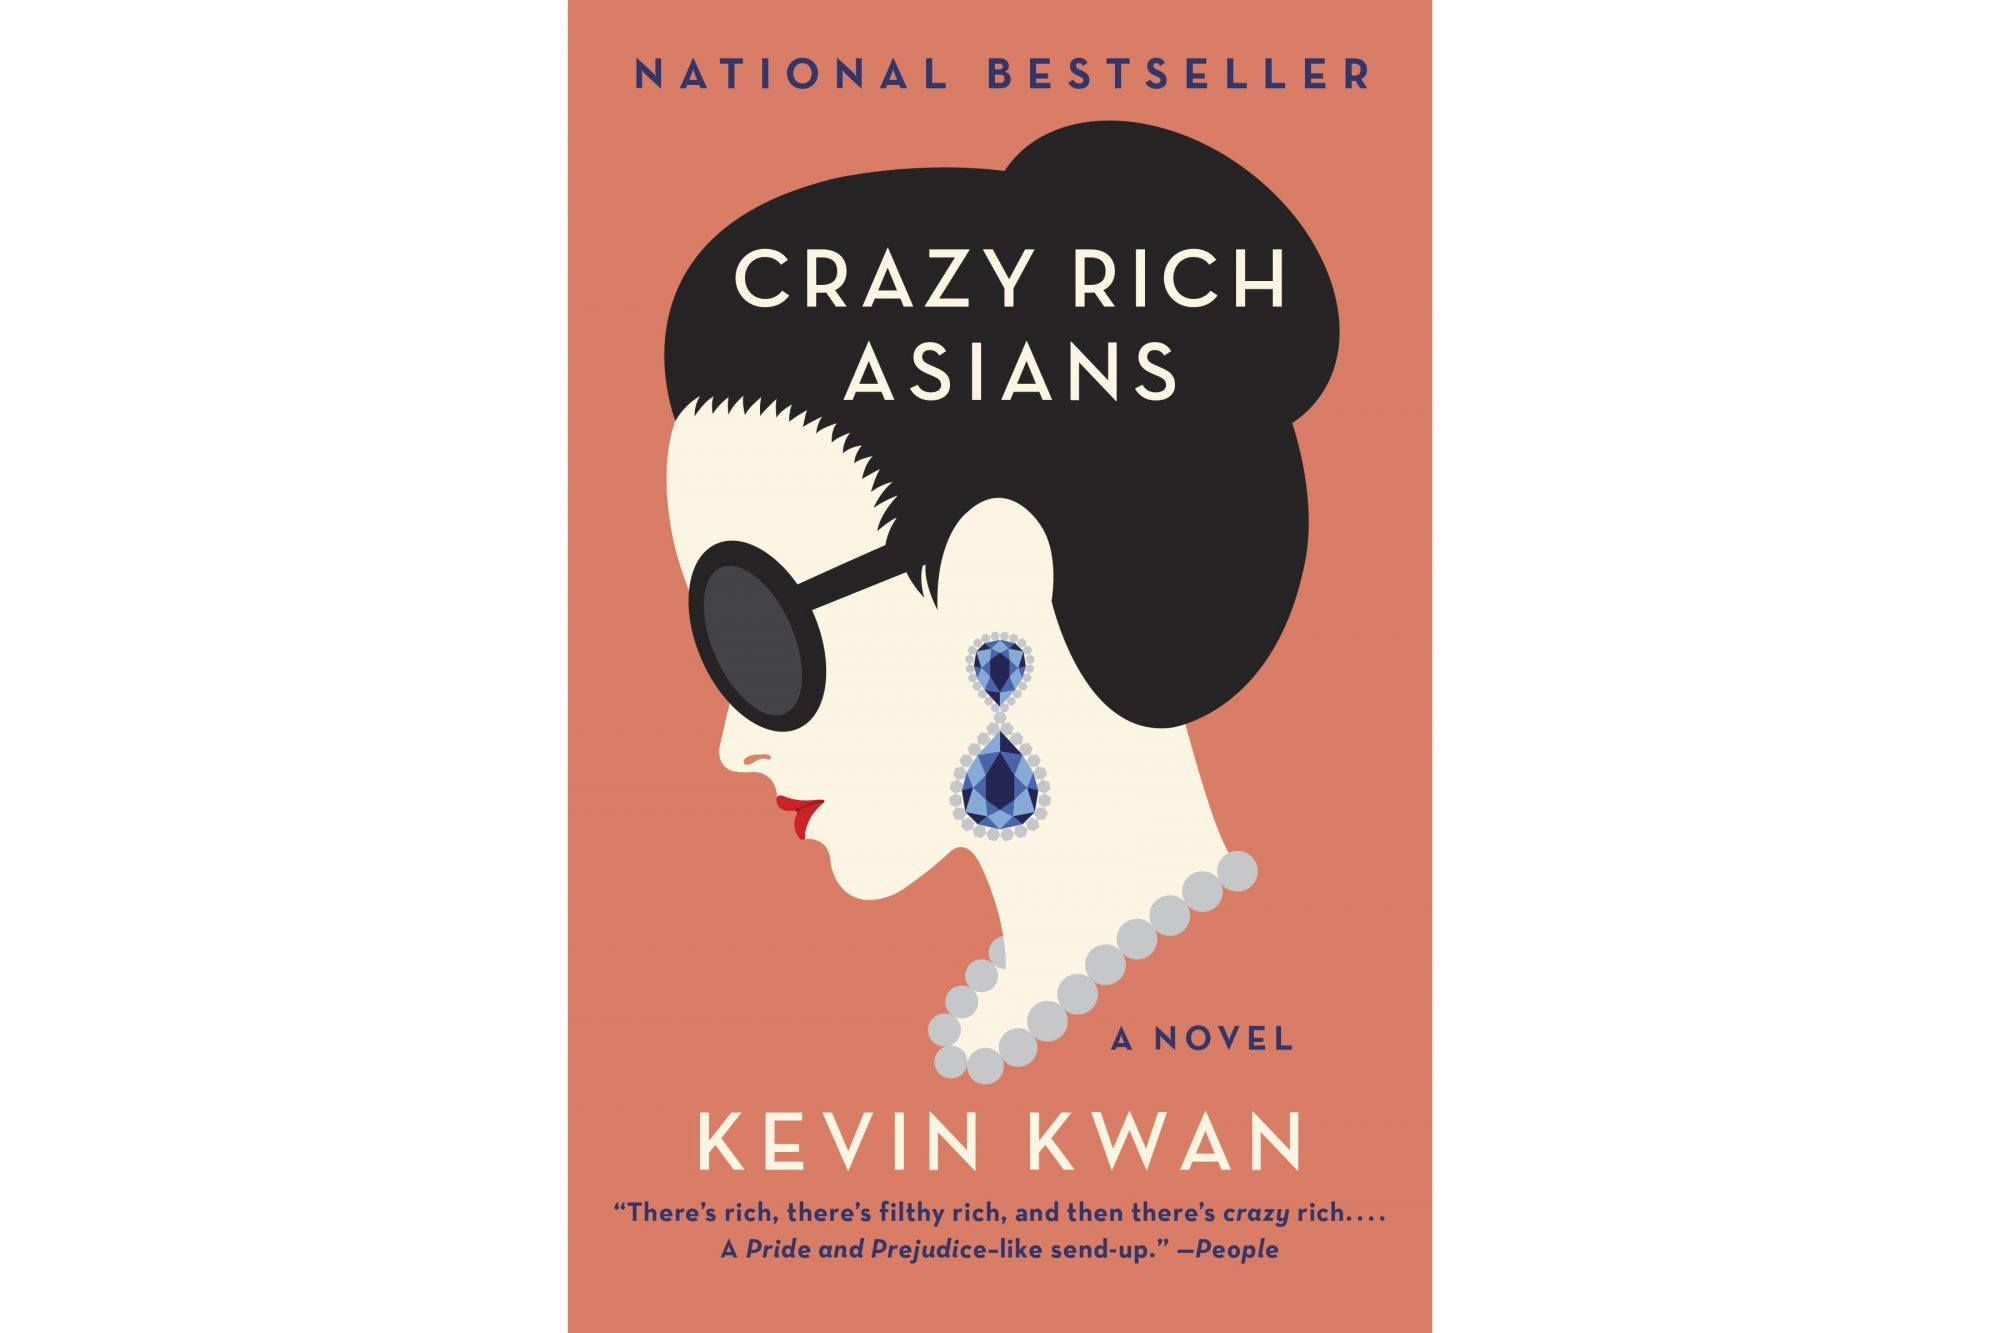 Crazy Rich Asians, by Kevin Kwan